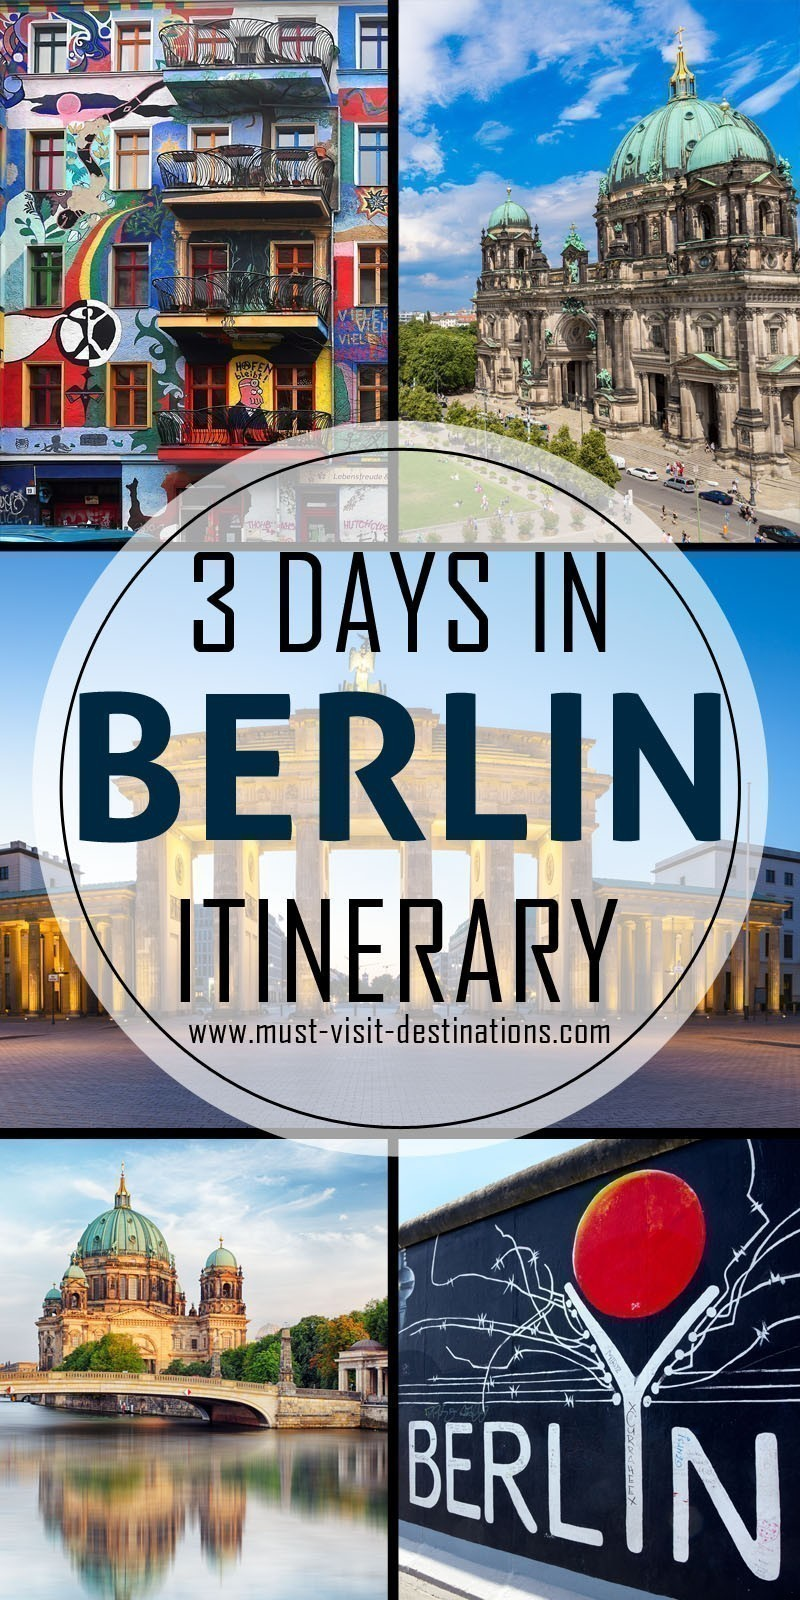 Only 3 days in Berlin? No problem! Check out this itinerary! #must-visit #destination